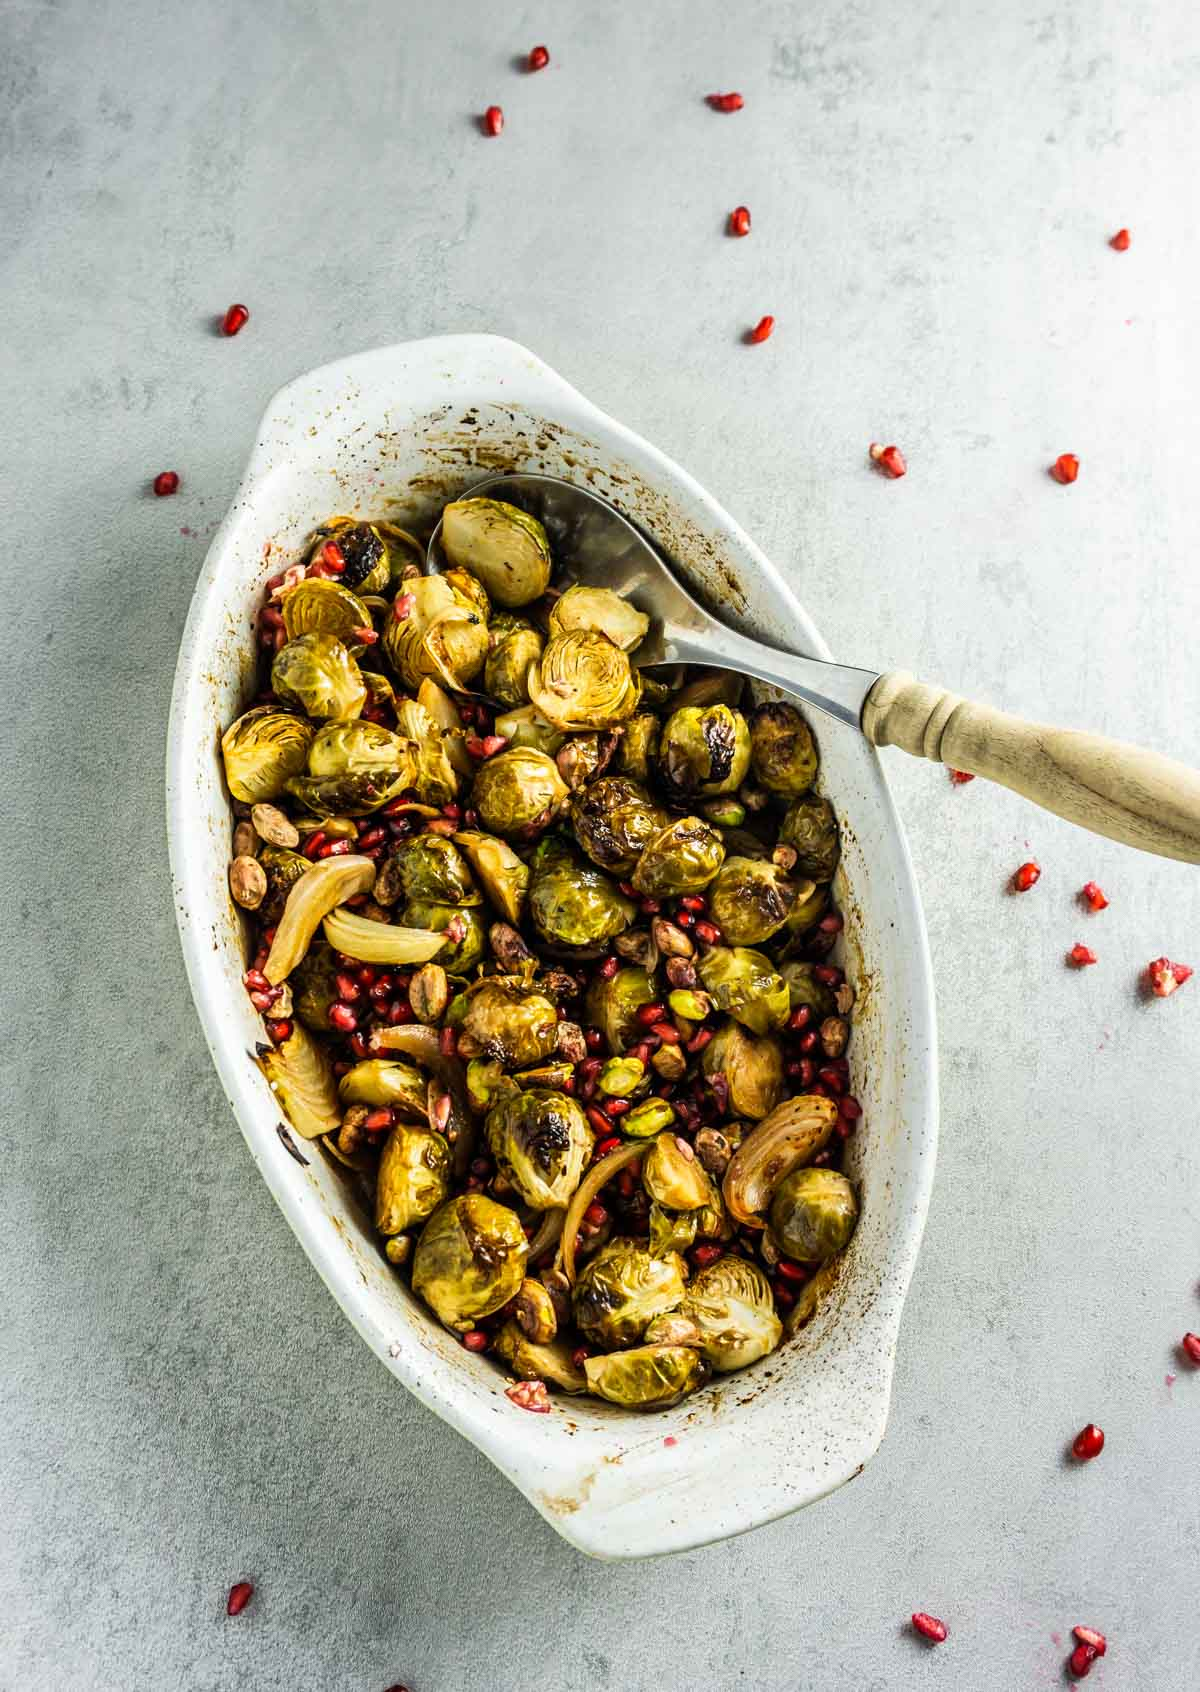 Roasted Brussel sprouts in a pan baking dish with a wooden spatula